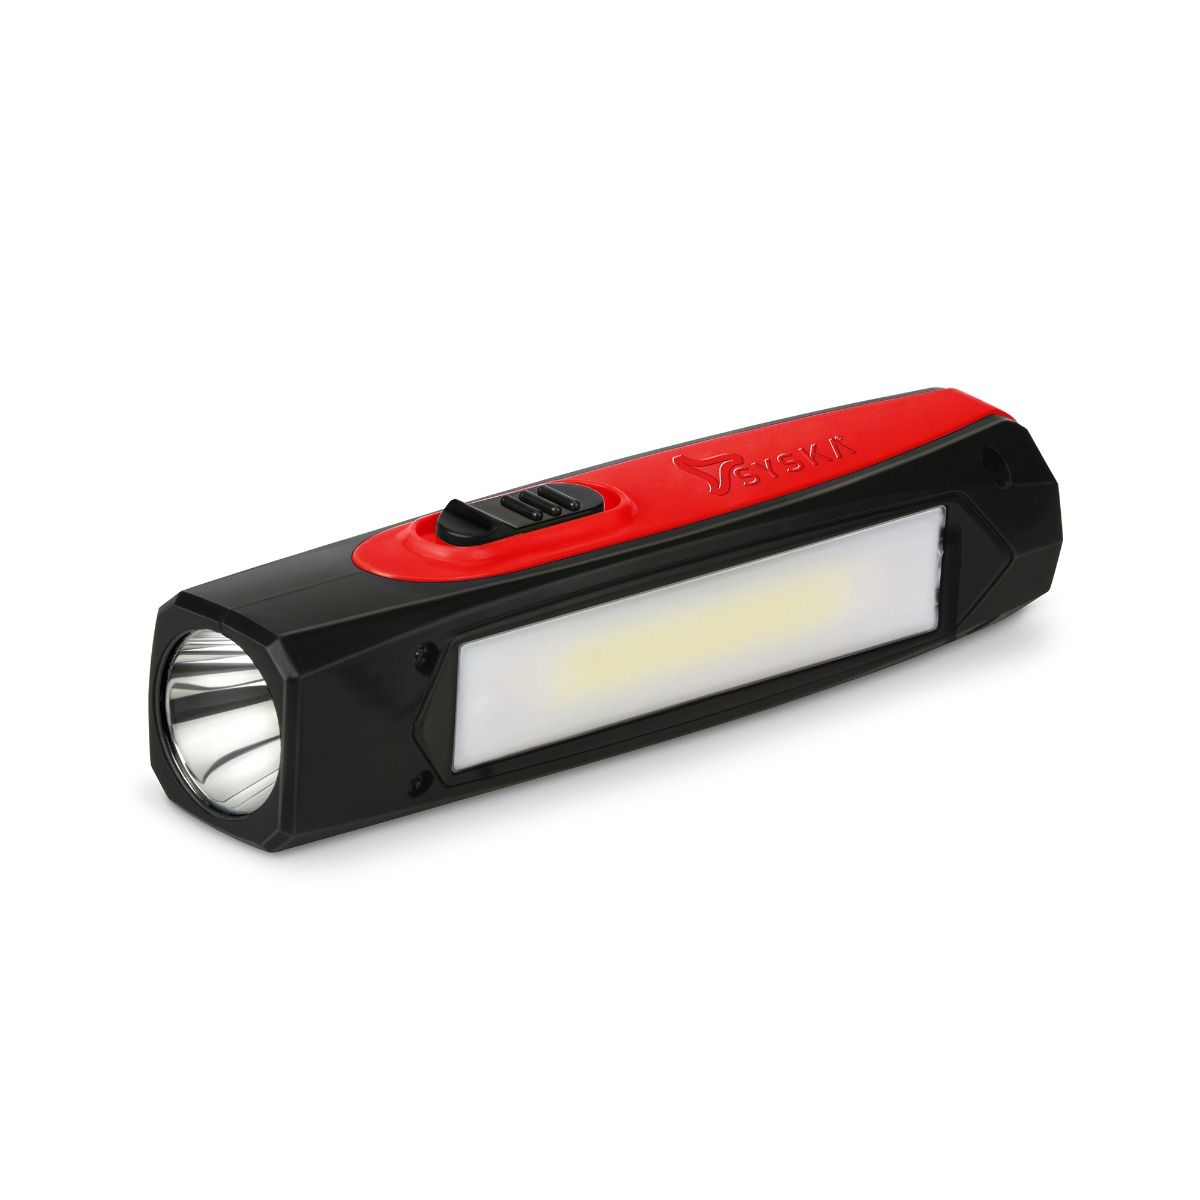 SYSKA T112ML DUOTRON 1W Bright Led Rechargeable Torch